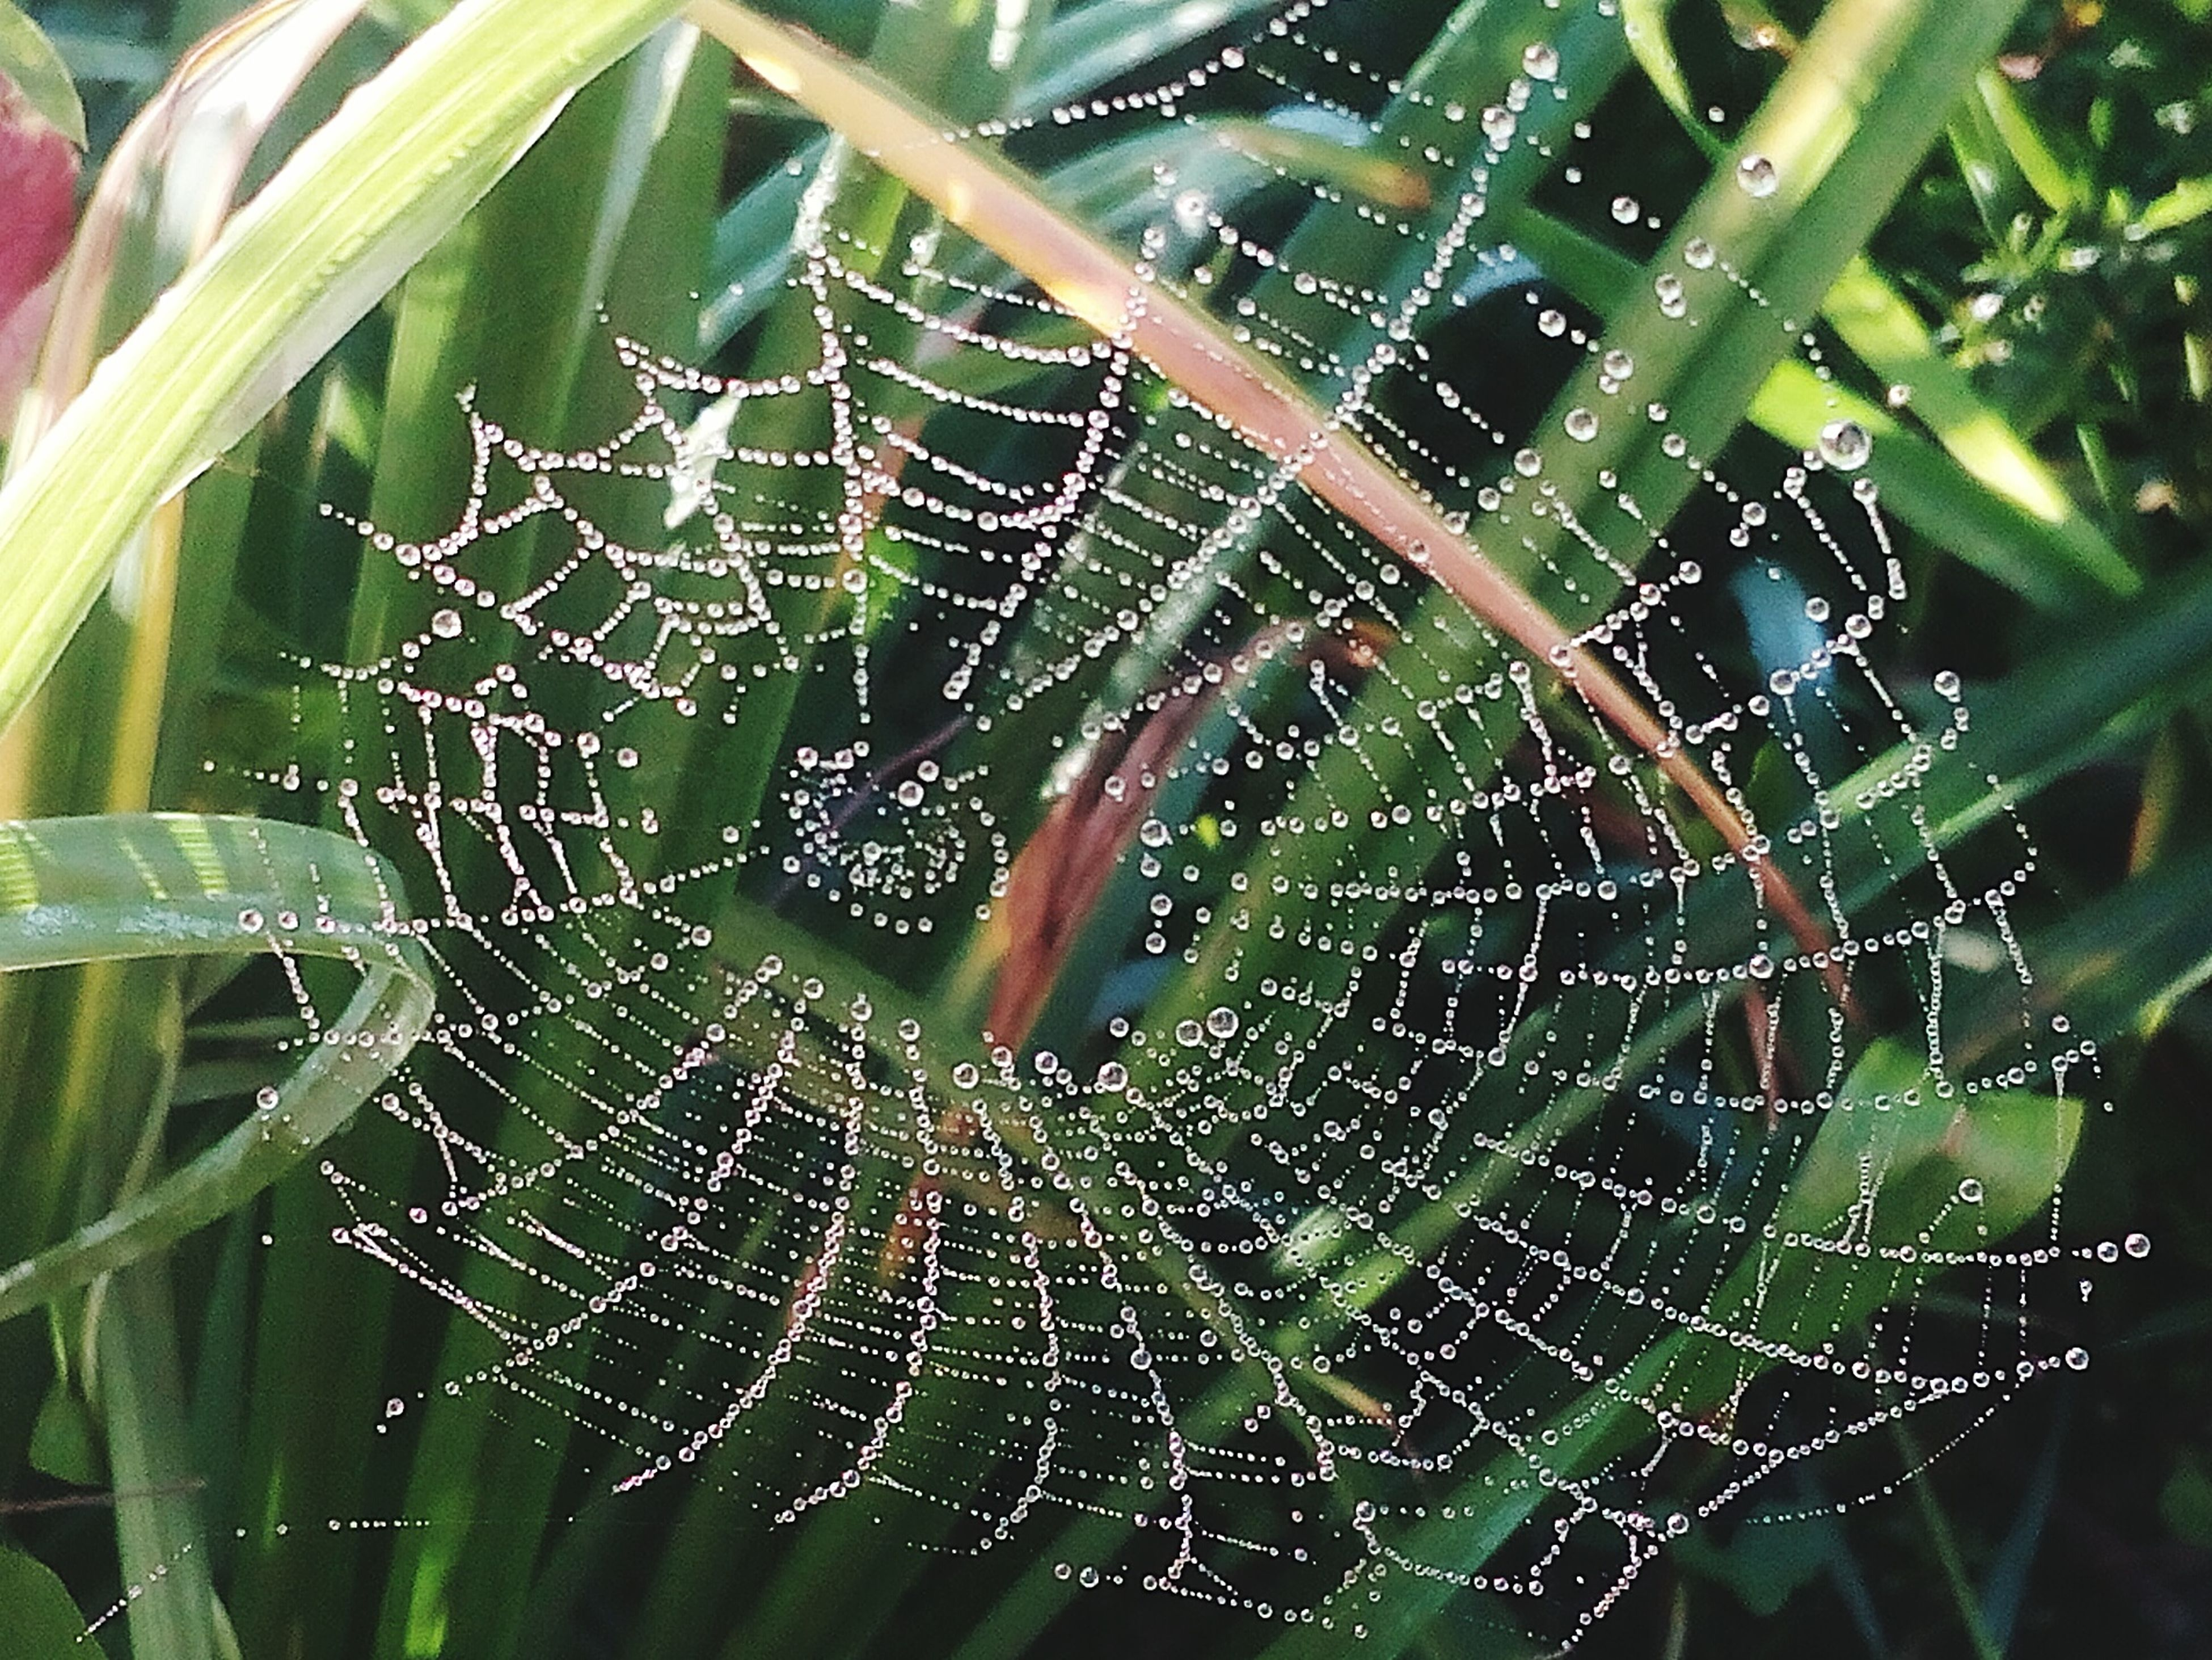 spider web, fragility, focus on foreground, close-up, water, dew, nature, natural pattern, web, beauty in nature, plant, complexity, outdoors, growth, day, selective focus, no people, tranquility, detail